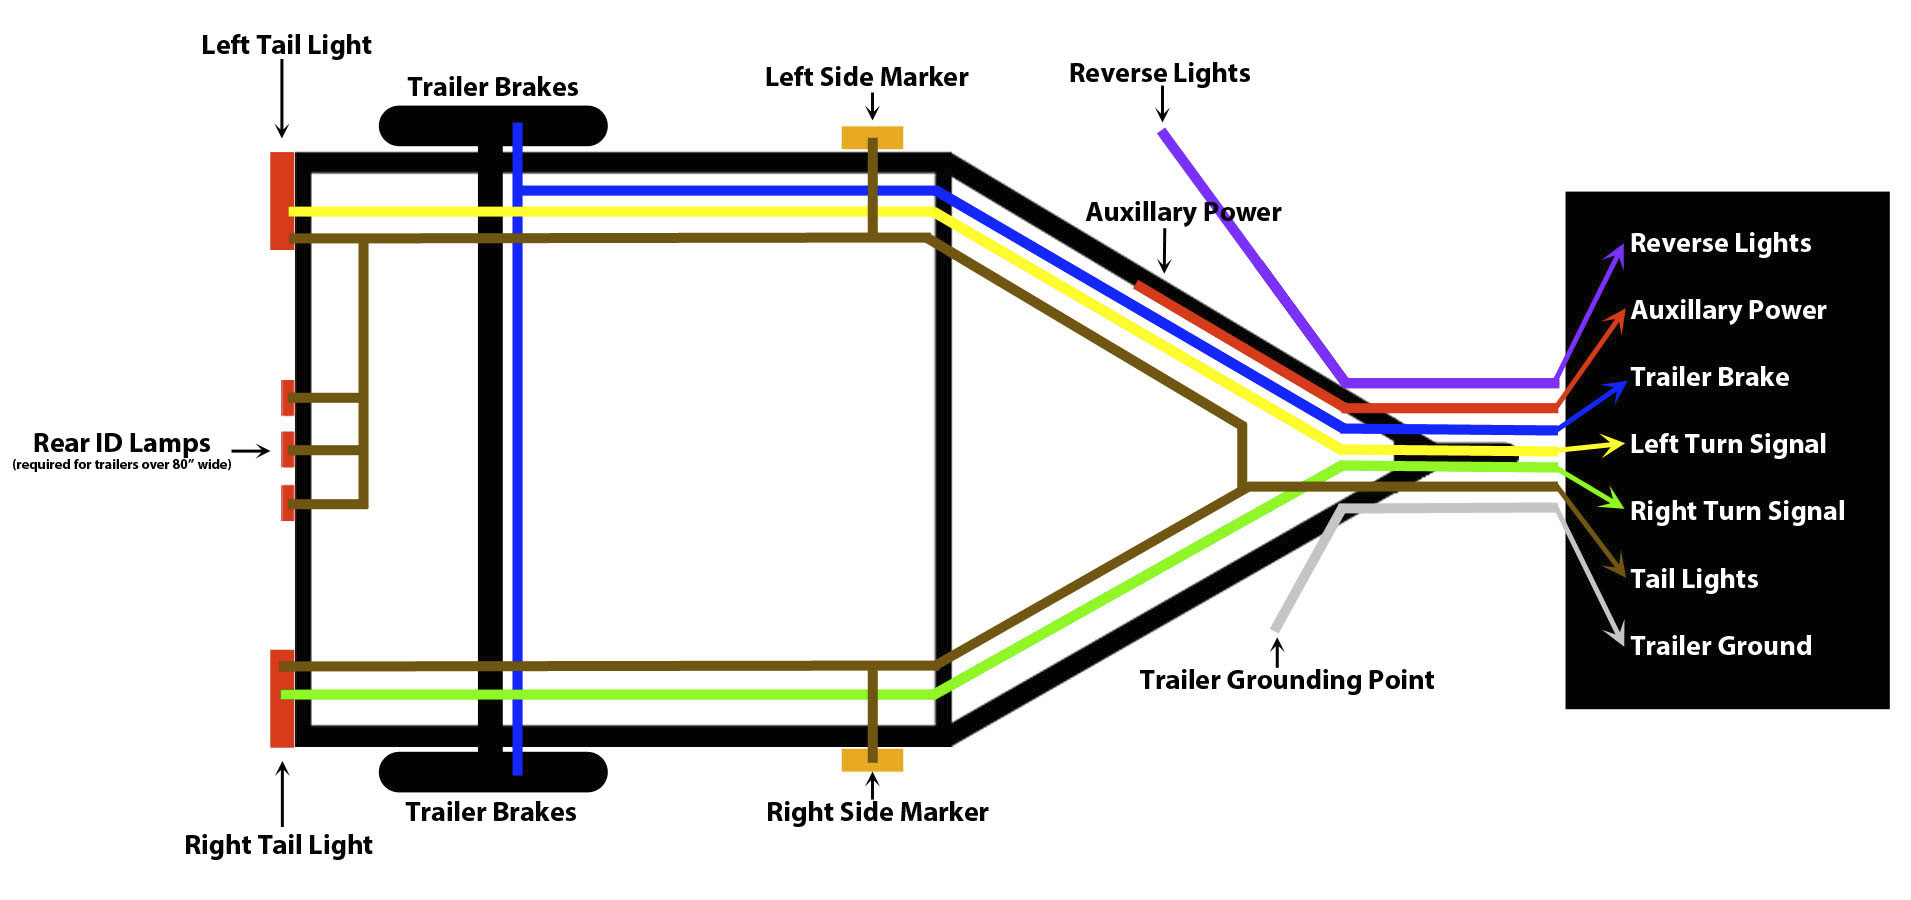 How To Wire Trailer Lights - Trailer Wiring Guide & Videos - 7 Flat Trailer Wiring Diagram